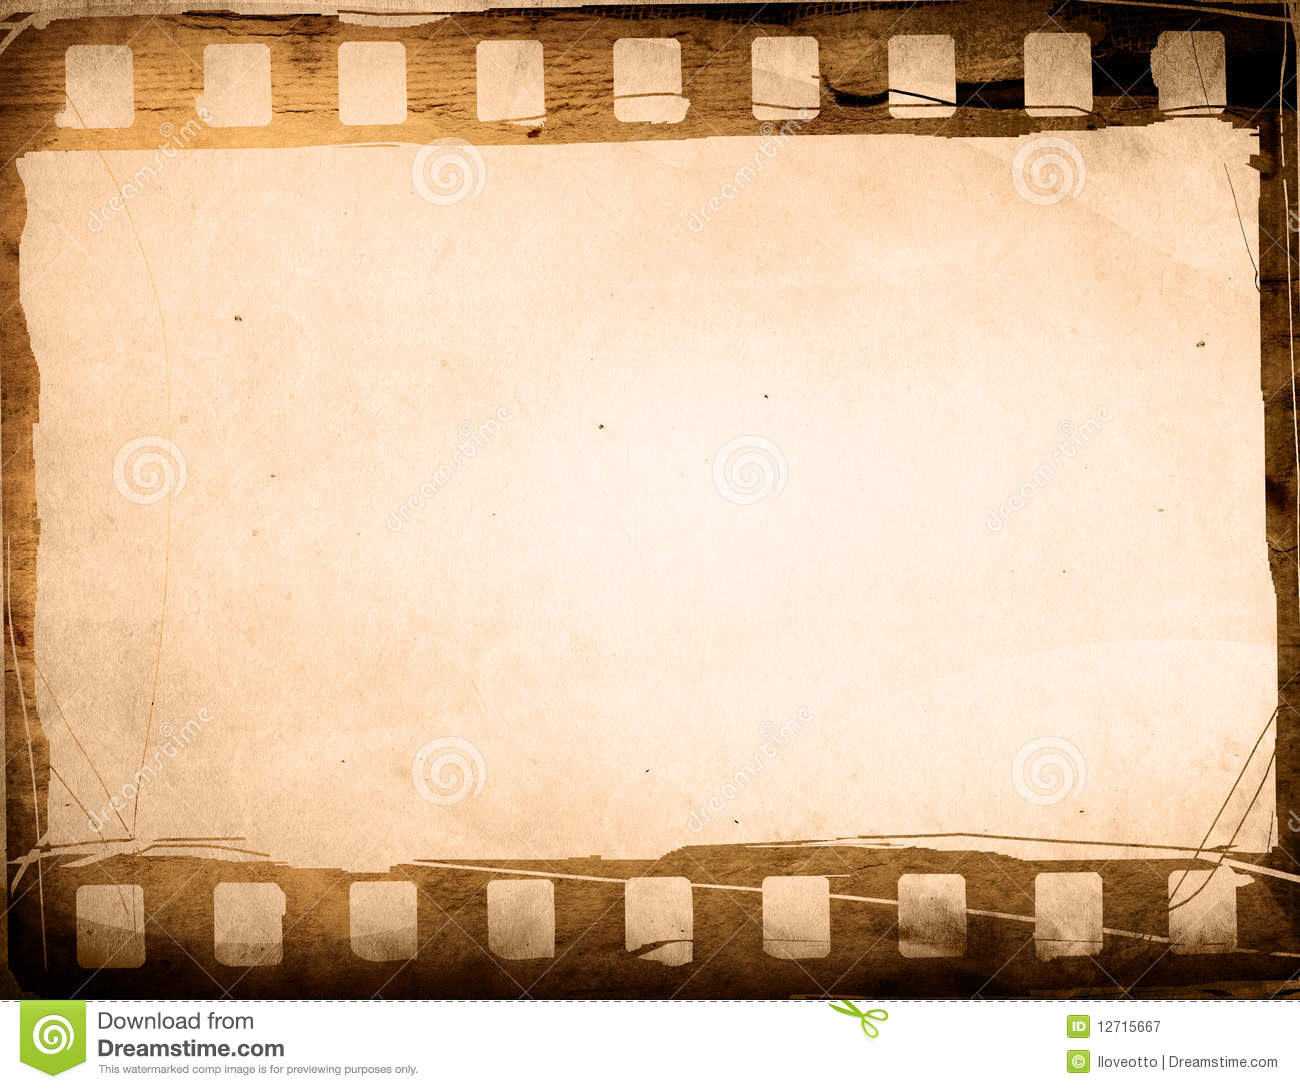 Filmstreifen Bilderrahmen Grunge Film Frame Effect Royalty Free Stock Photography